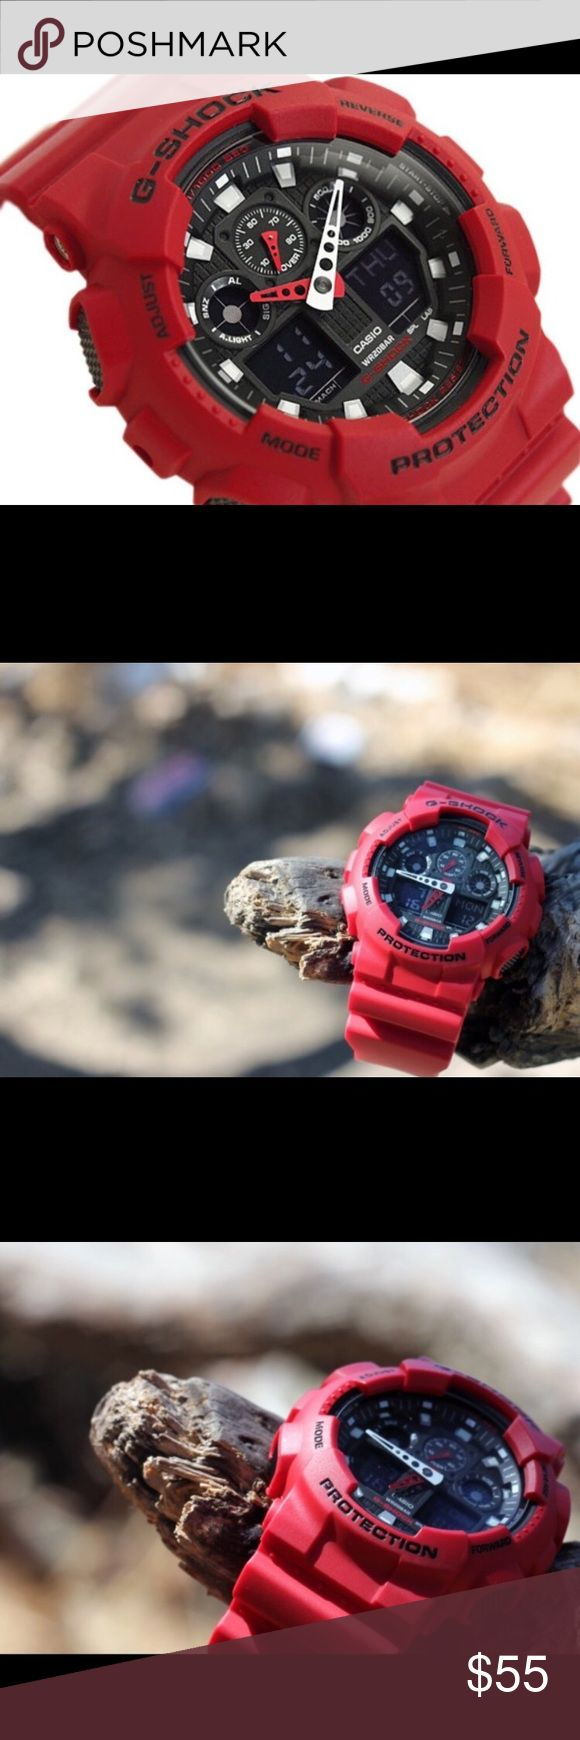 NEW Casio G Shock GA-100 Red Edition BRAND NEW Men's Casio G Shock Fully Red Edition! *COMES WITH FULL PACKAGING**  Great for gift! (Original packaging with tags)  Model: GA100 Casio G Shock   Retail price ($110)  Lowest prices offered  We will ship same day!   Buy with confidence, 100% satisfaction guaranteed   Returns are accepted within 7 days for a full refund.   Thanks Casio Accessories Watches